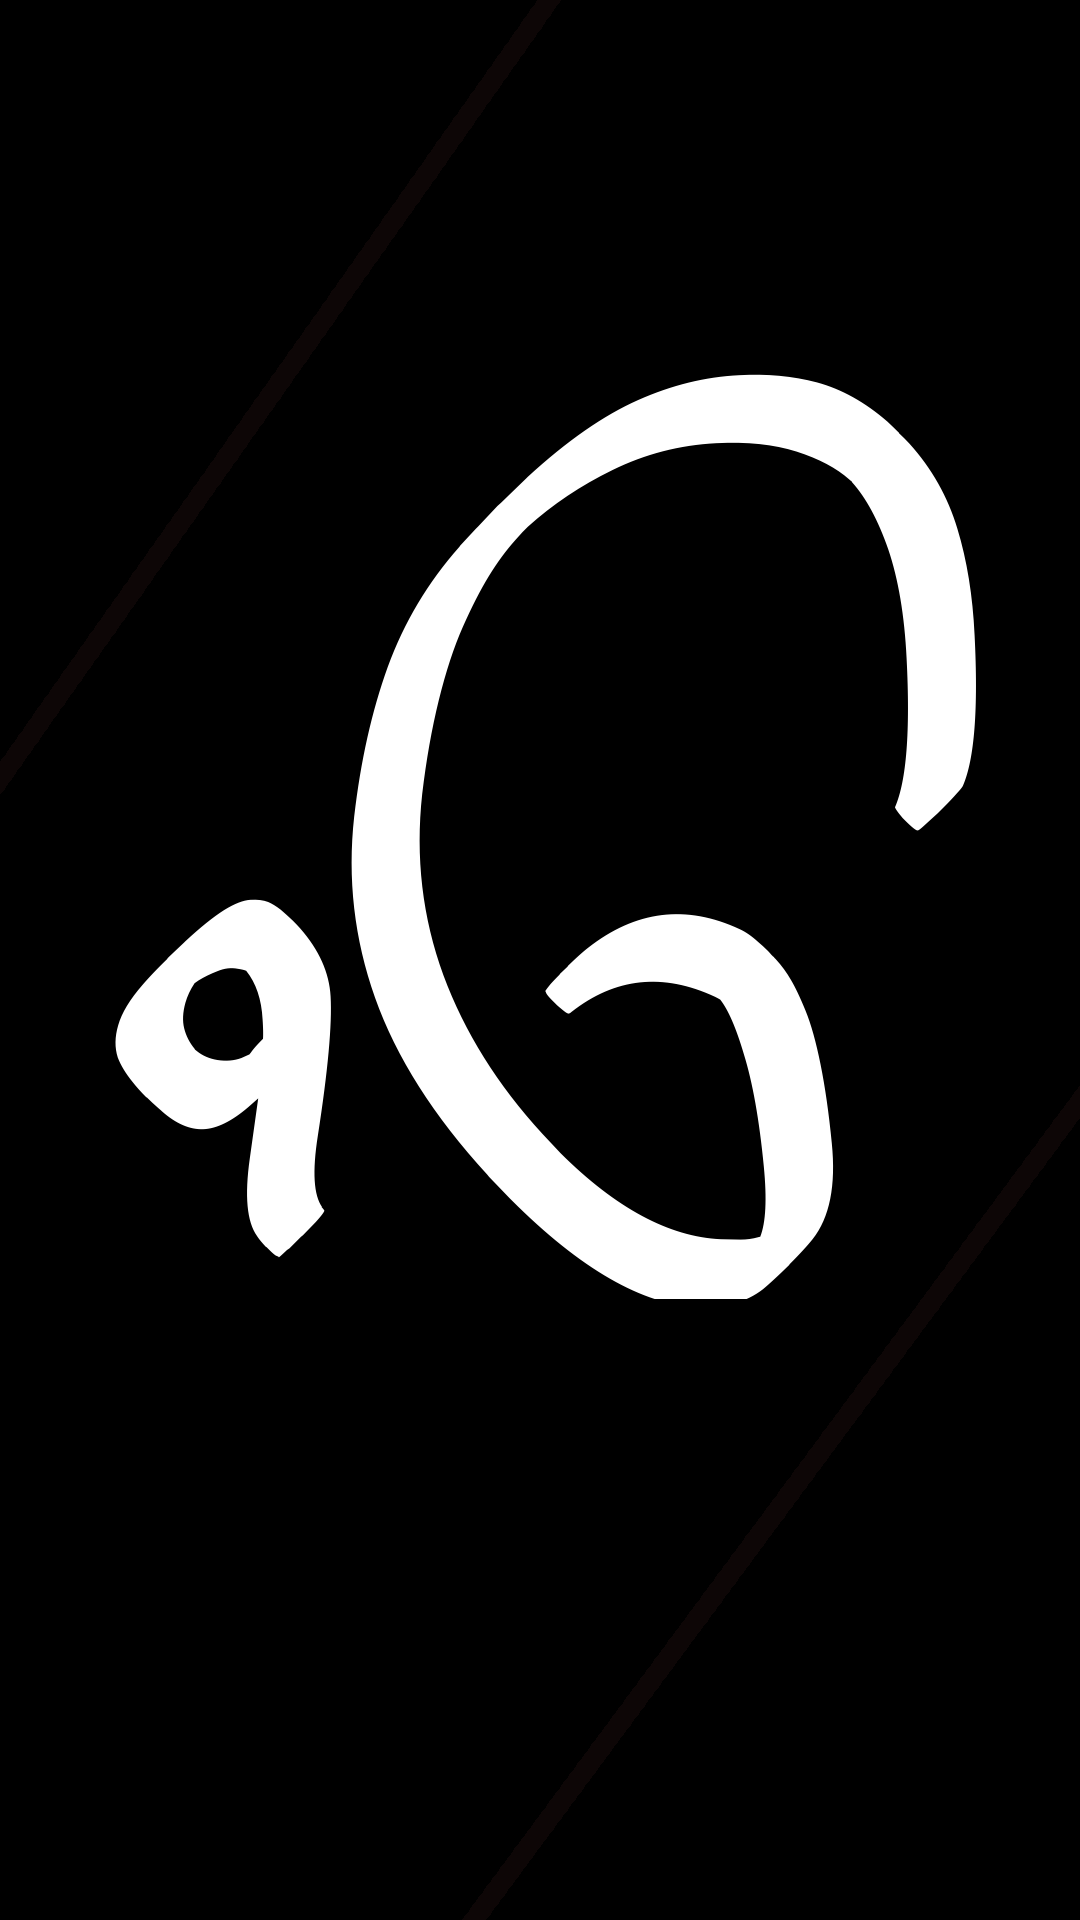 Mobile wallpaper: Ik Onkar. Iu0027m trying my hands on creating mobile . - Ek Onkar PNG